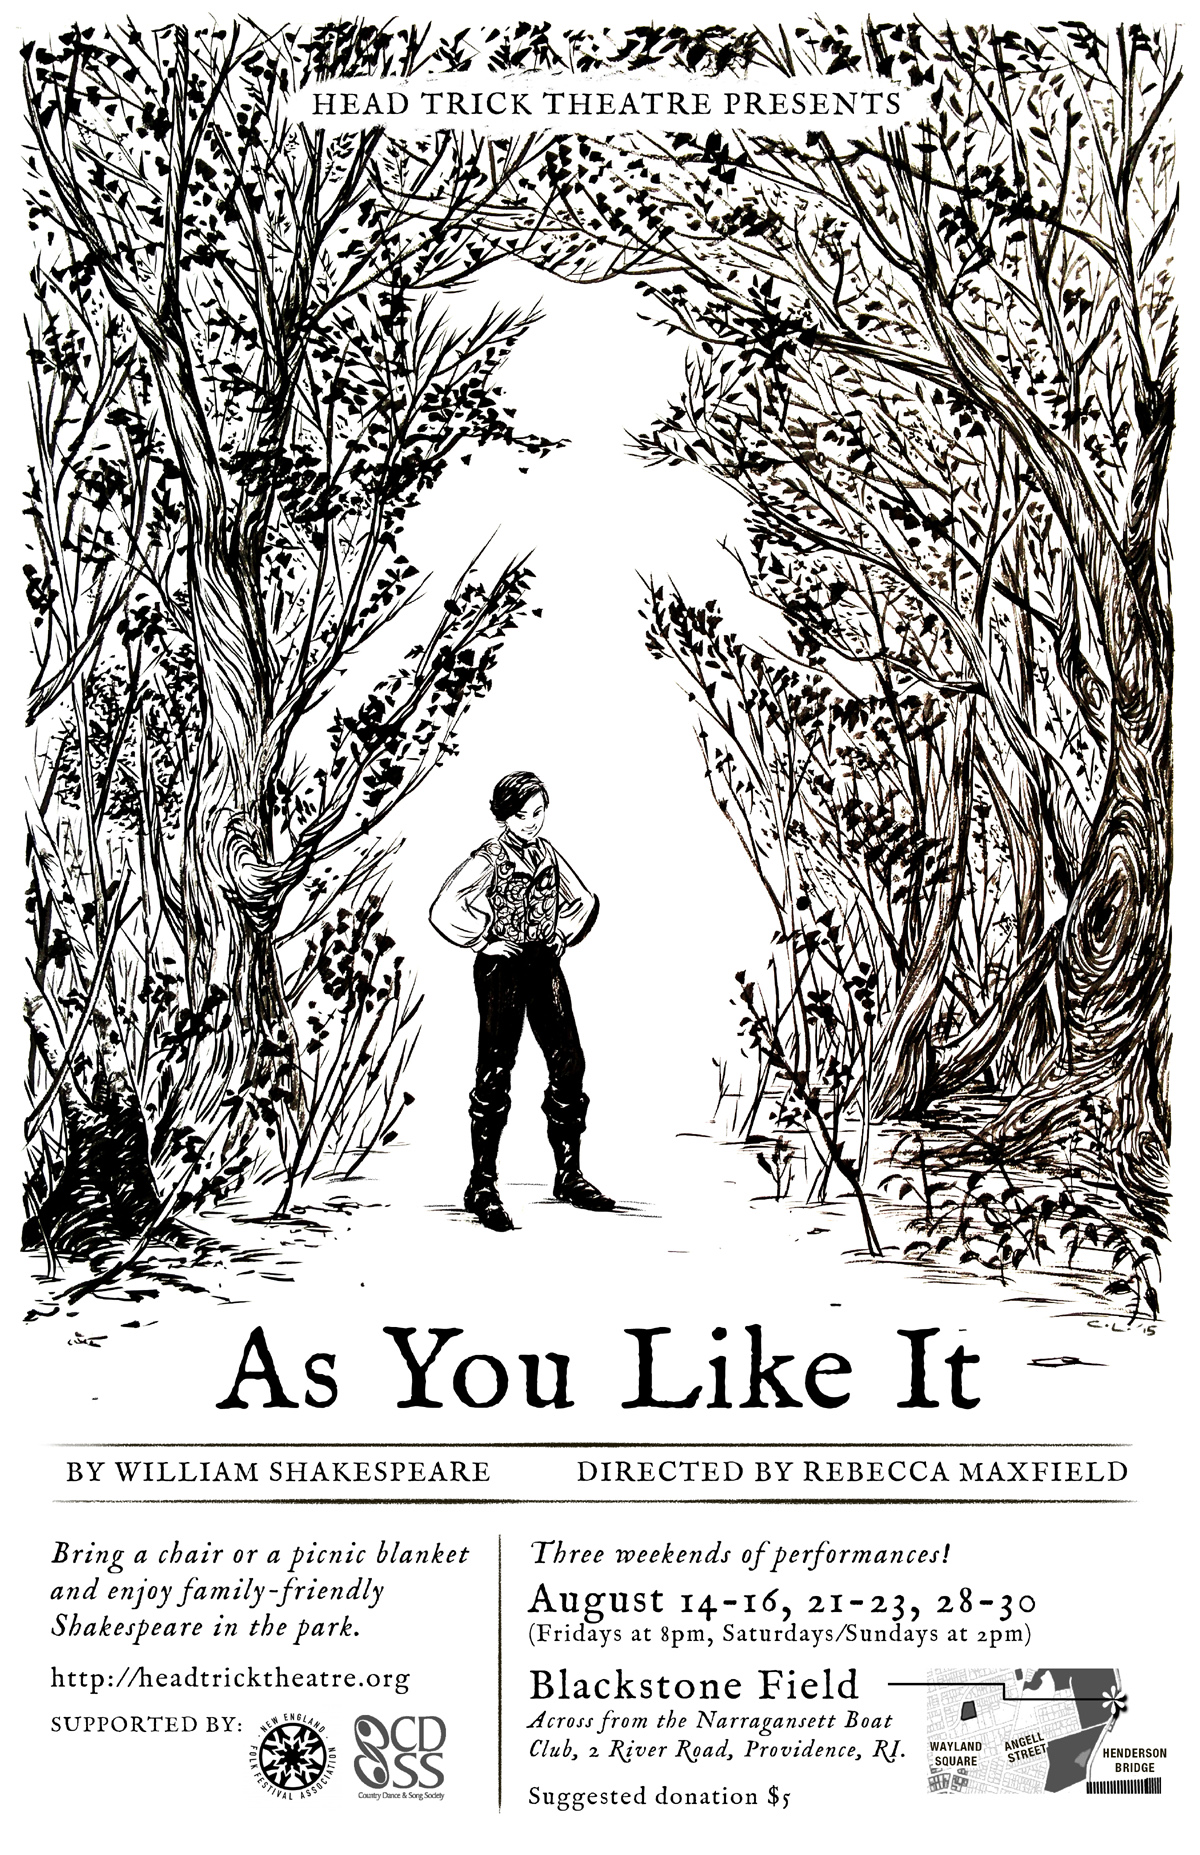 Head Trick Theatre presents Shakespeare's 'As You Like It' directed by Rebecca Maxfield